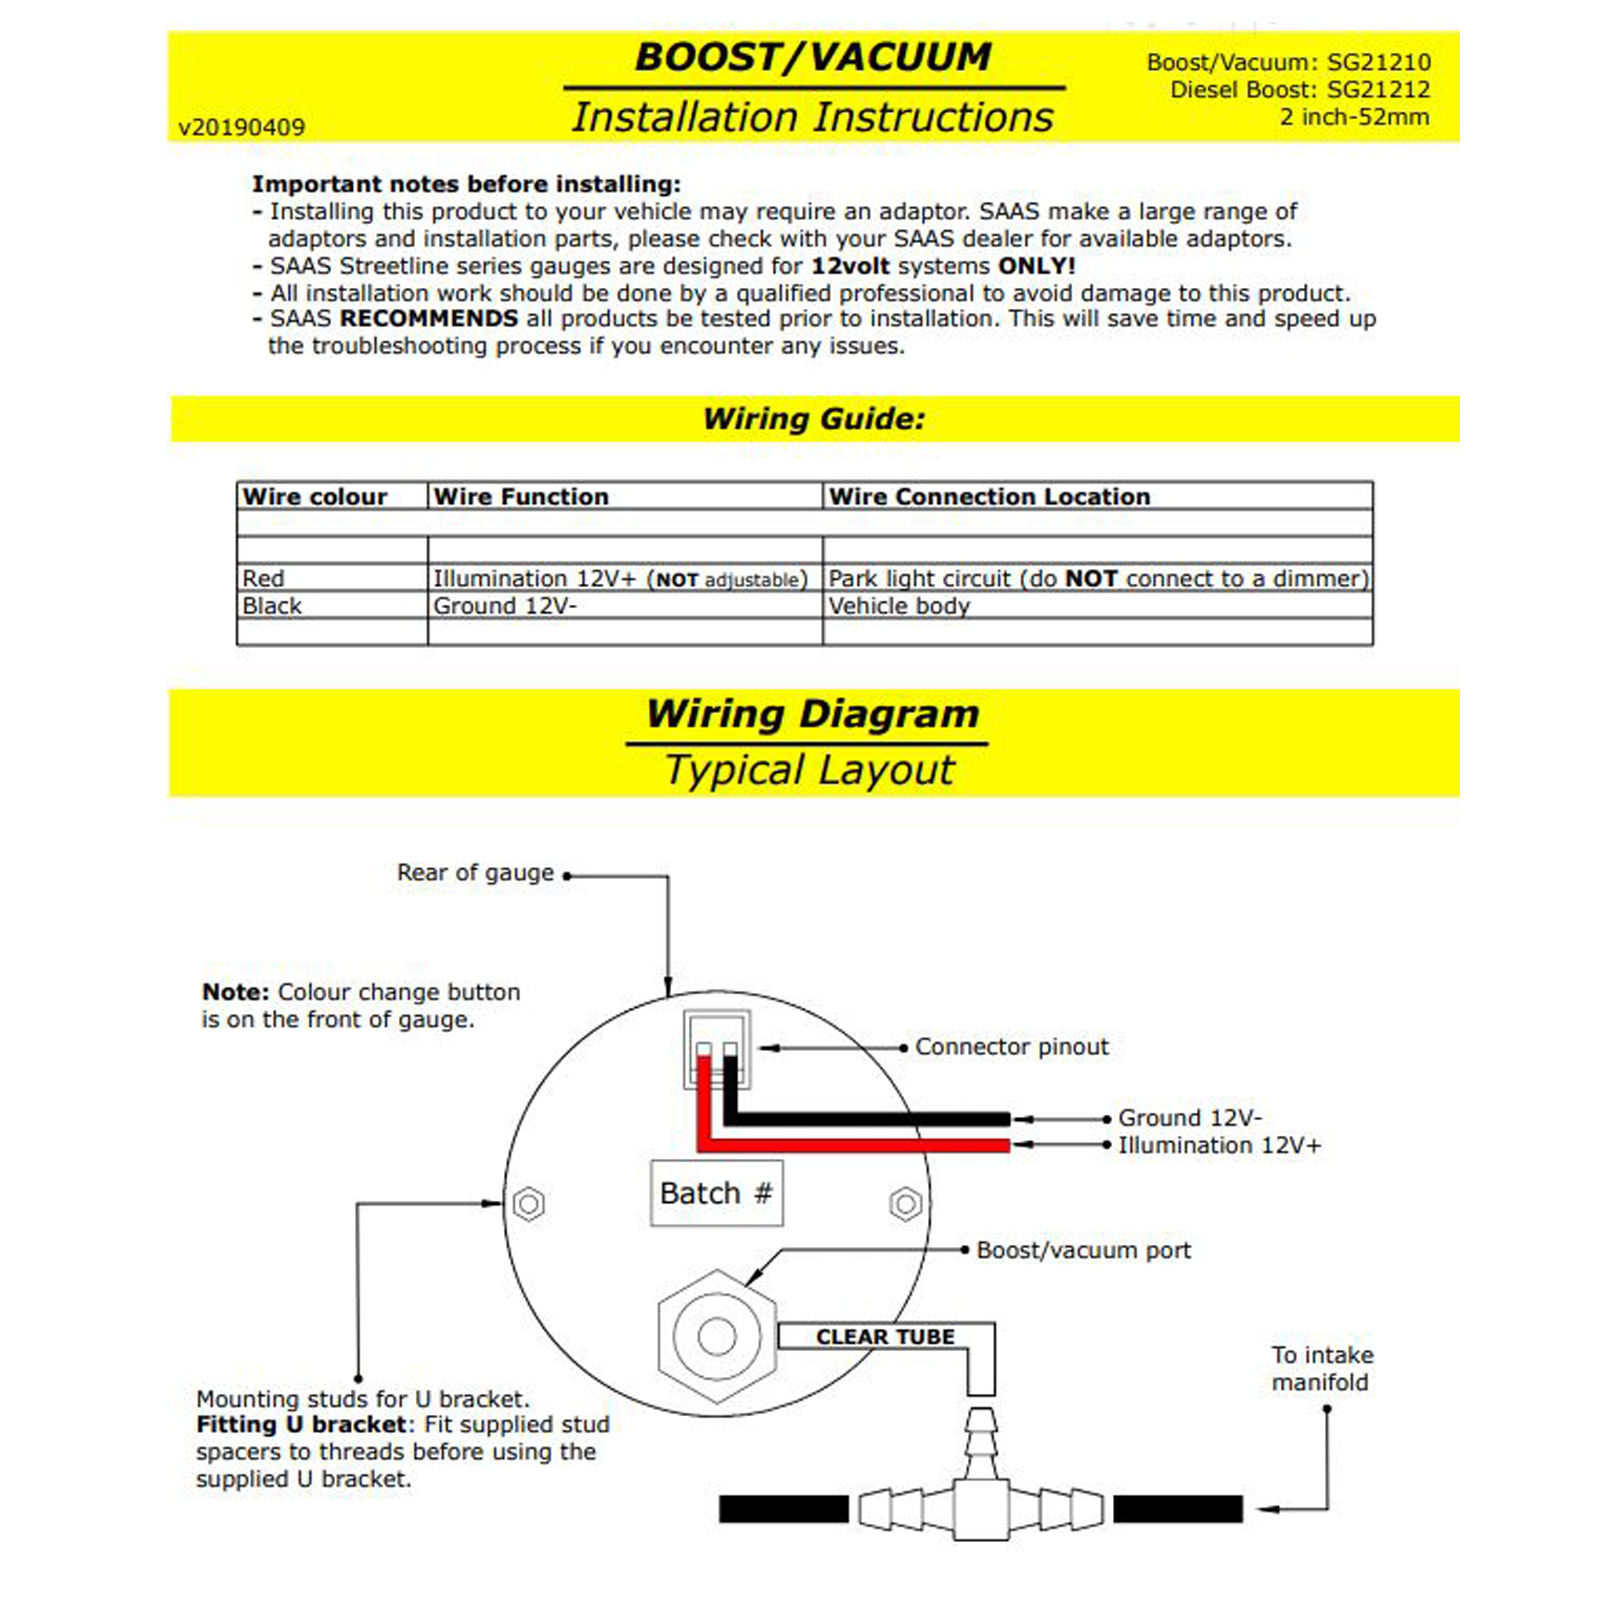 SG21212 saas street series 0 20 psi diesel turbo boost gauge black 7 saas boost gauge wiring diagram at soozxer.org